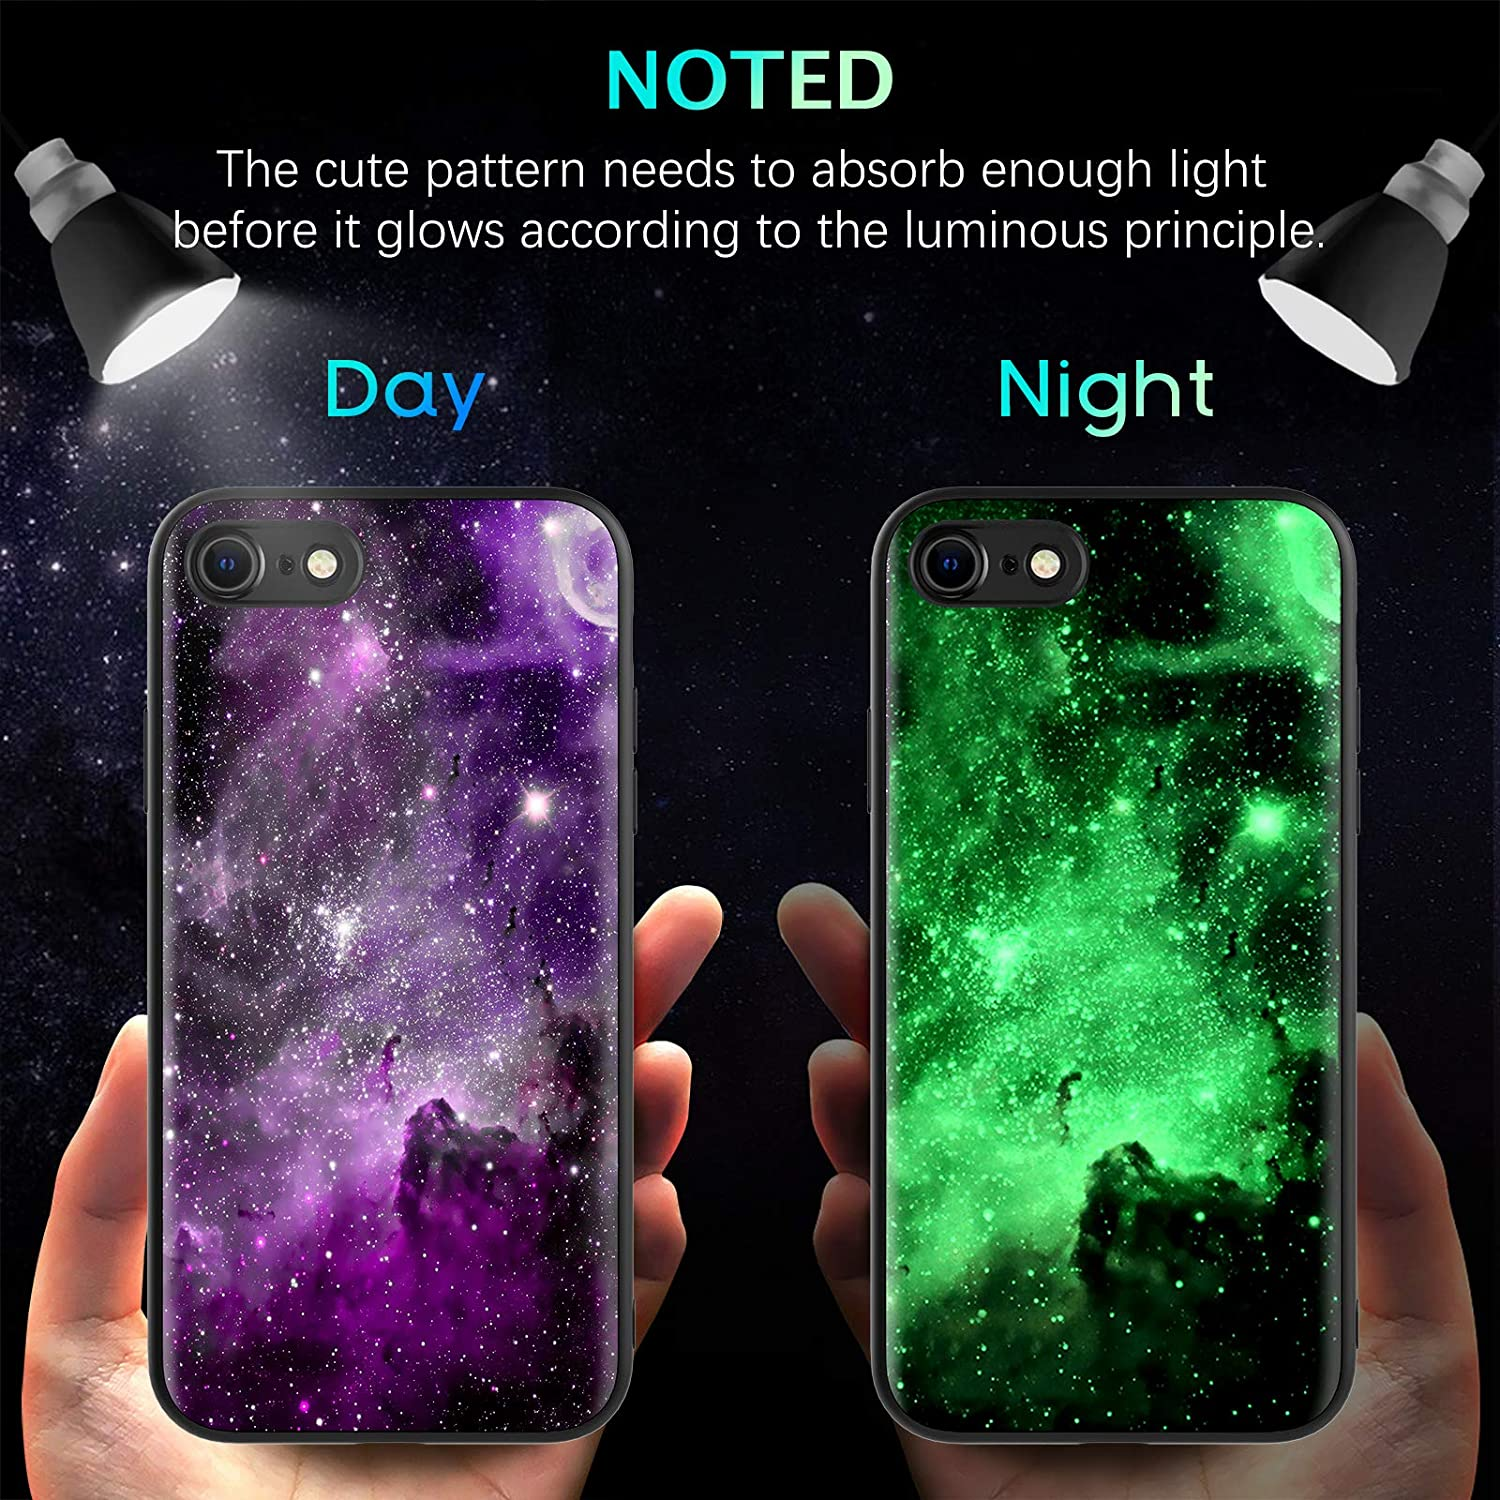 BENTOBEN iPhone SE 2020 Case, iPhone 8 Case, iPhone 7 Case, Slim Fit Glow in The Dark Shockproof Protective Phone Case Hybrid Hard PC Soft TPU Bumper Cover for iPhone SE 2020 (4.7inch), Purple Nebula